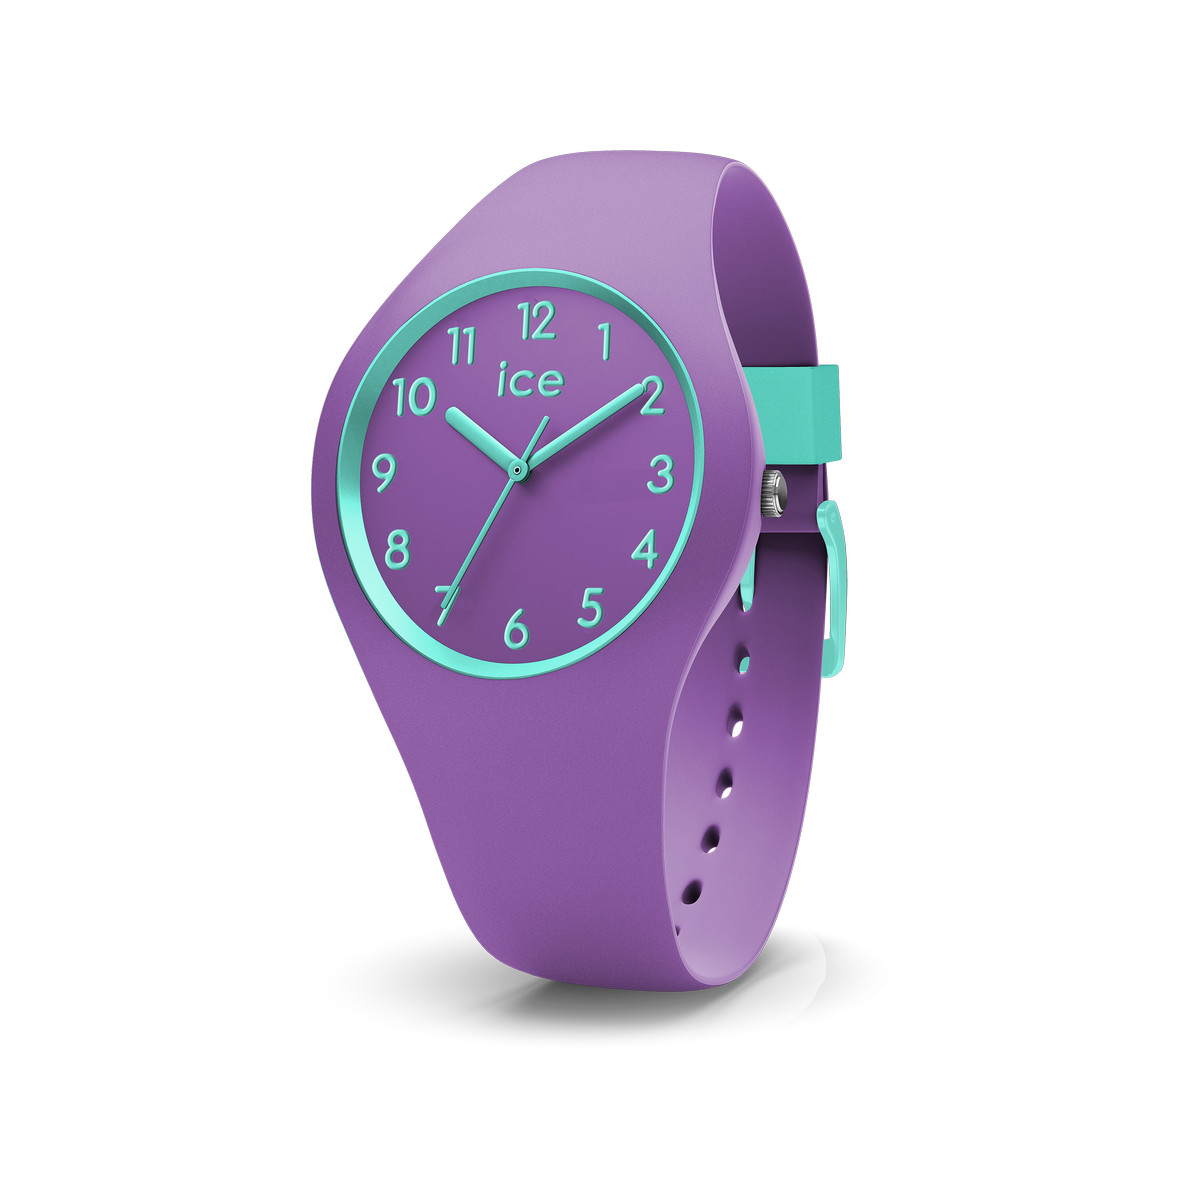 montre ice watch femme enfant silicone violet femme mod le 014432 maty. Black Bedroom Furniture Sets. Home Design Ideas